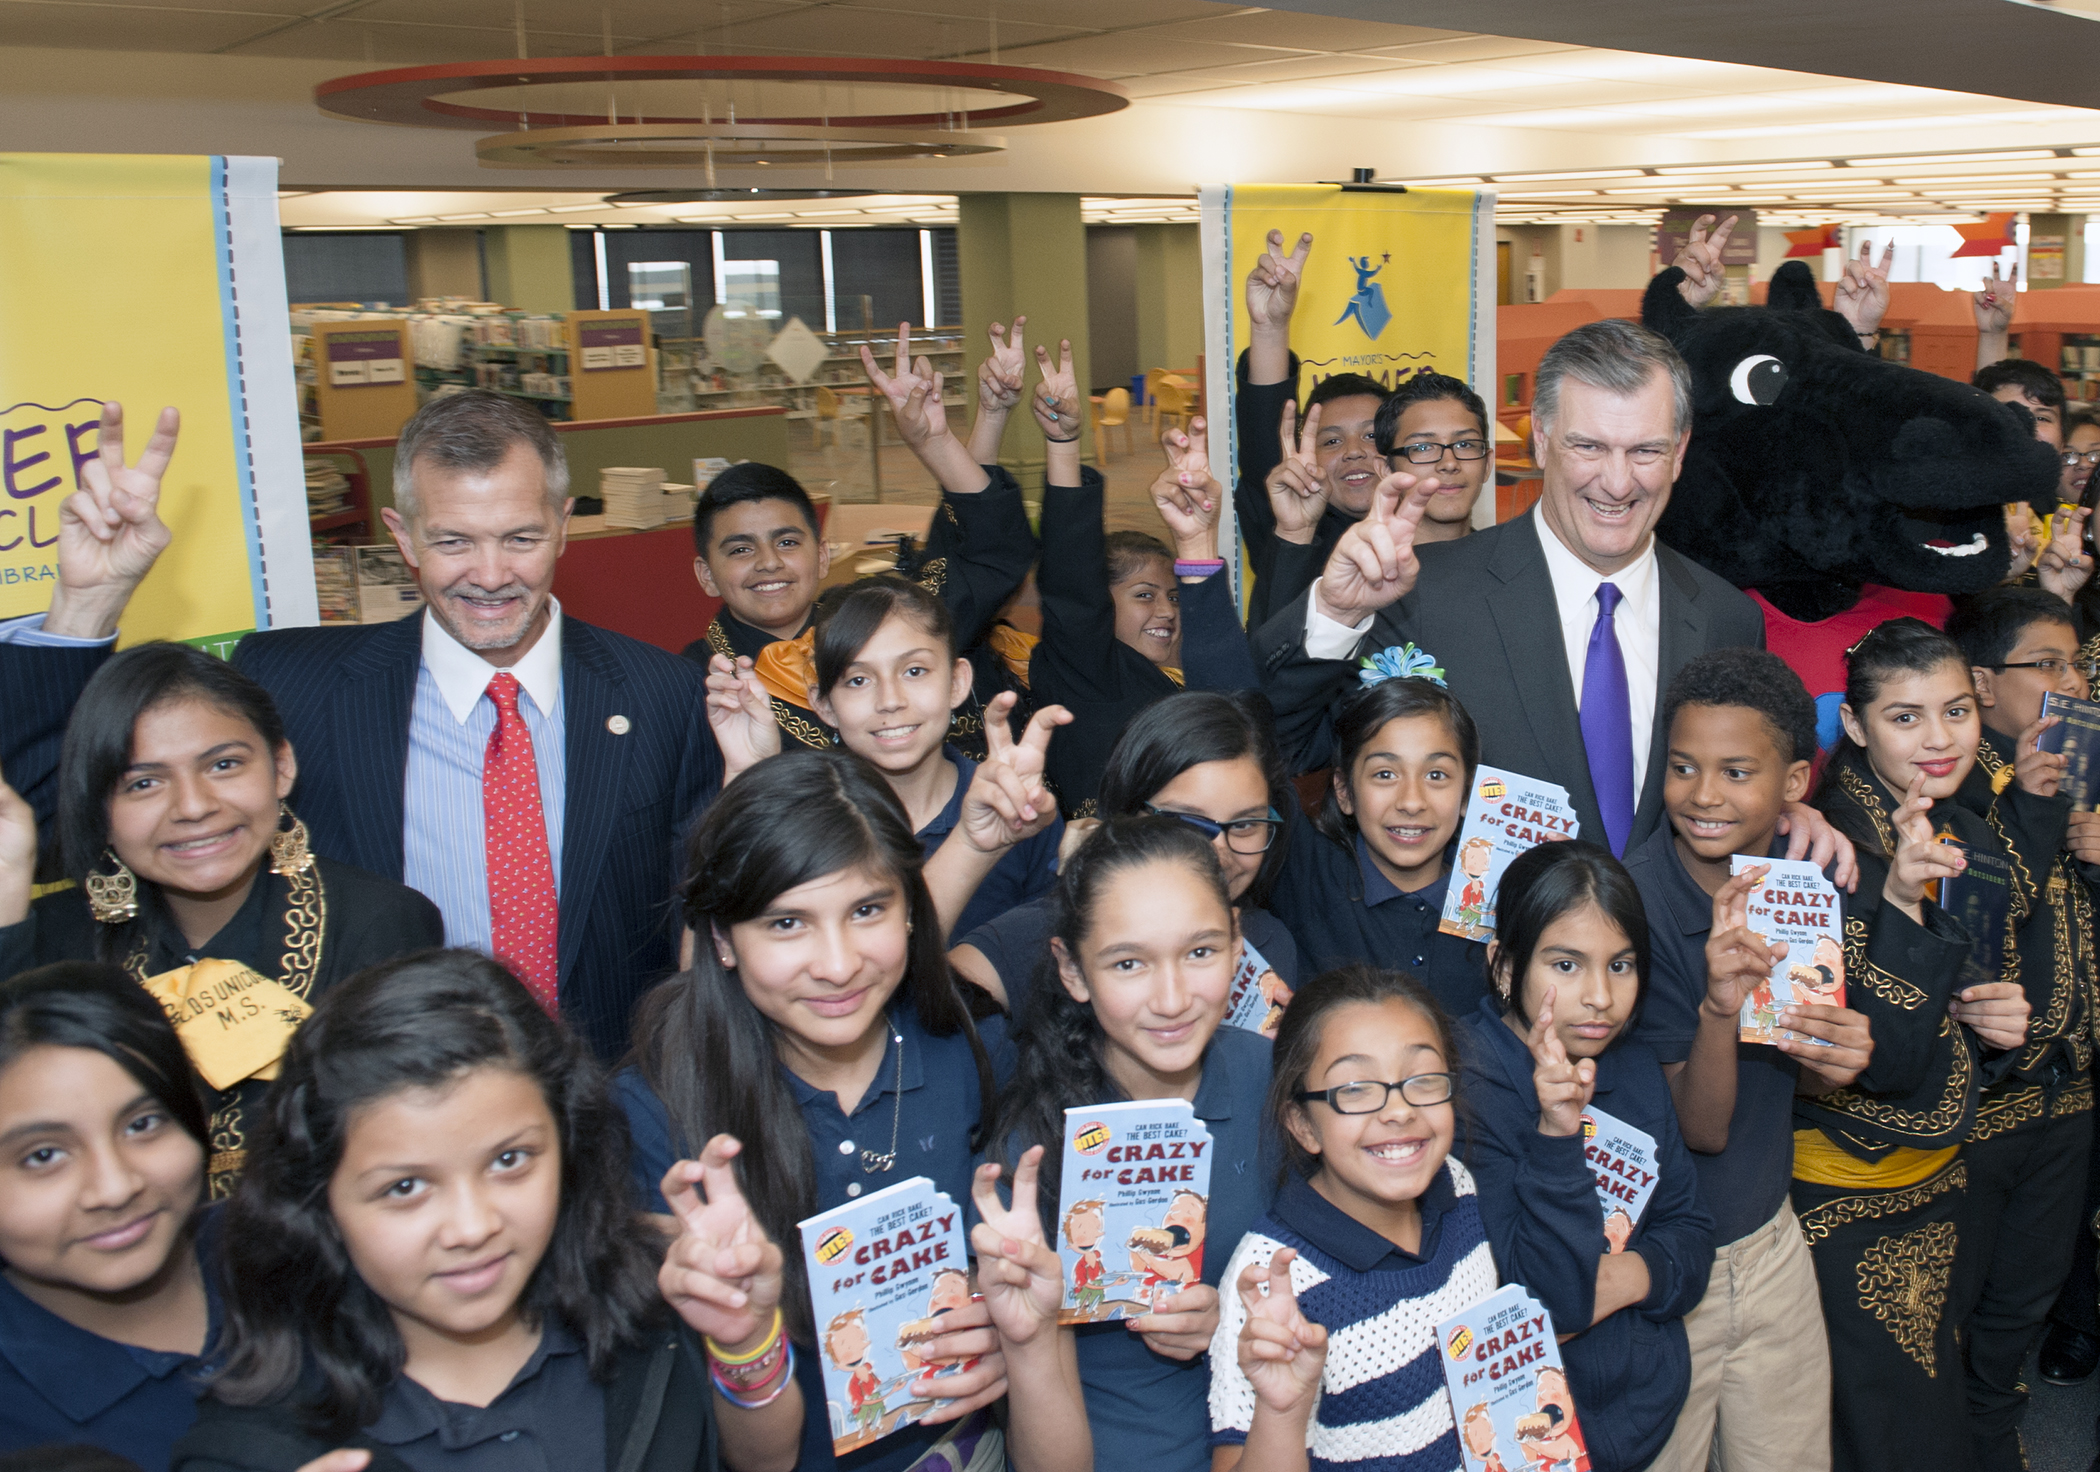 Announcement of Mayor's Summer Reading Club